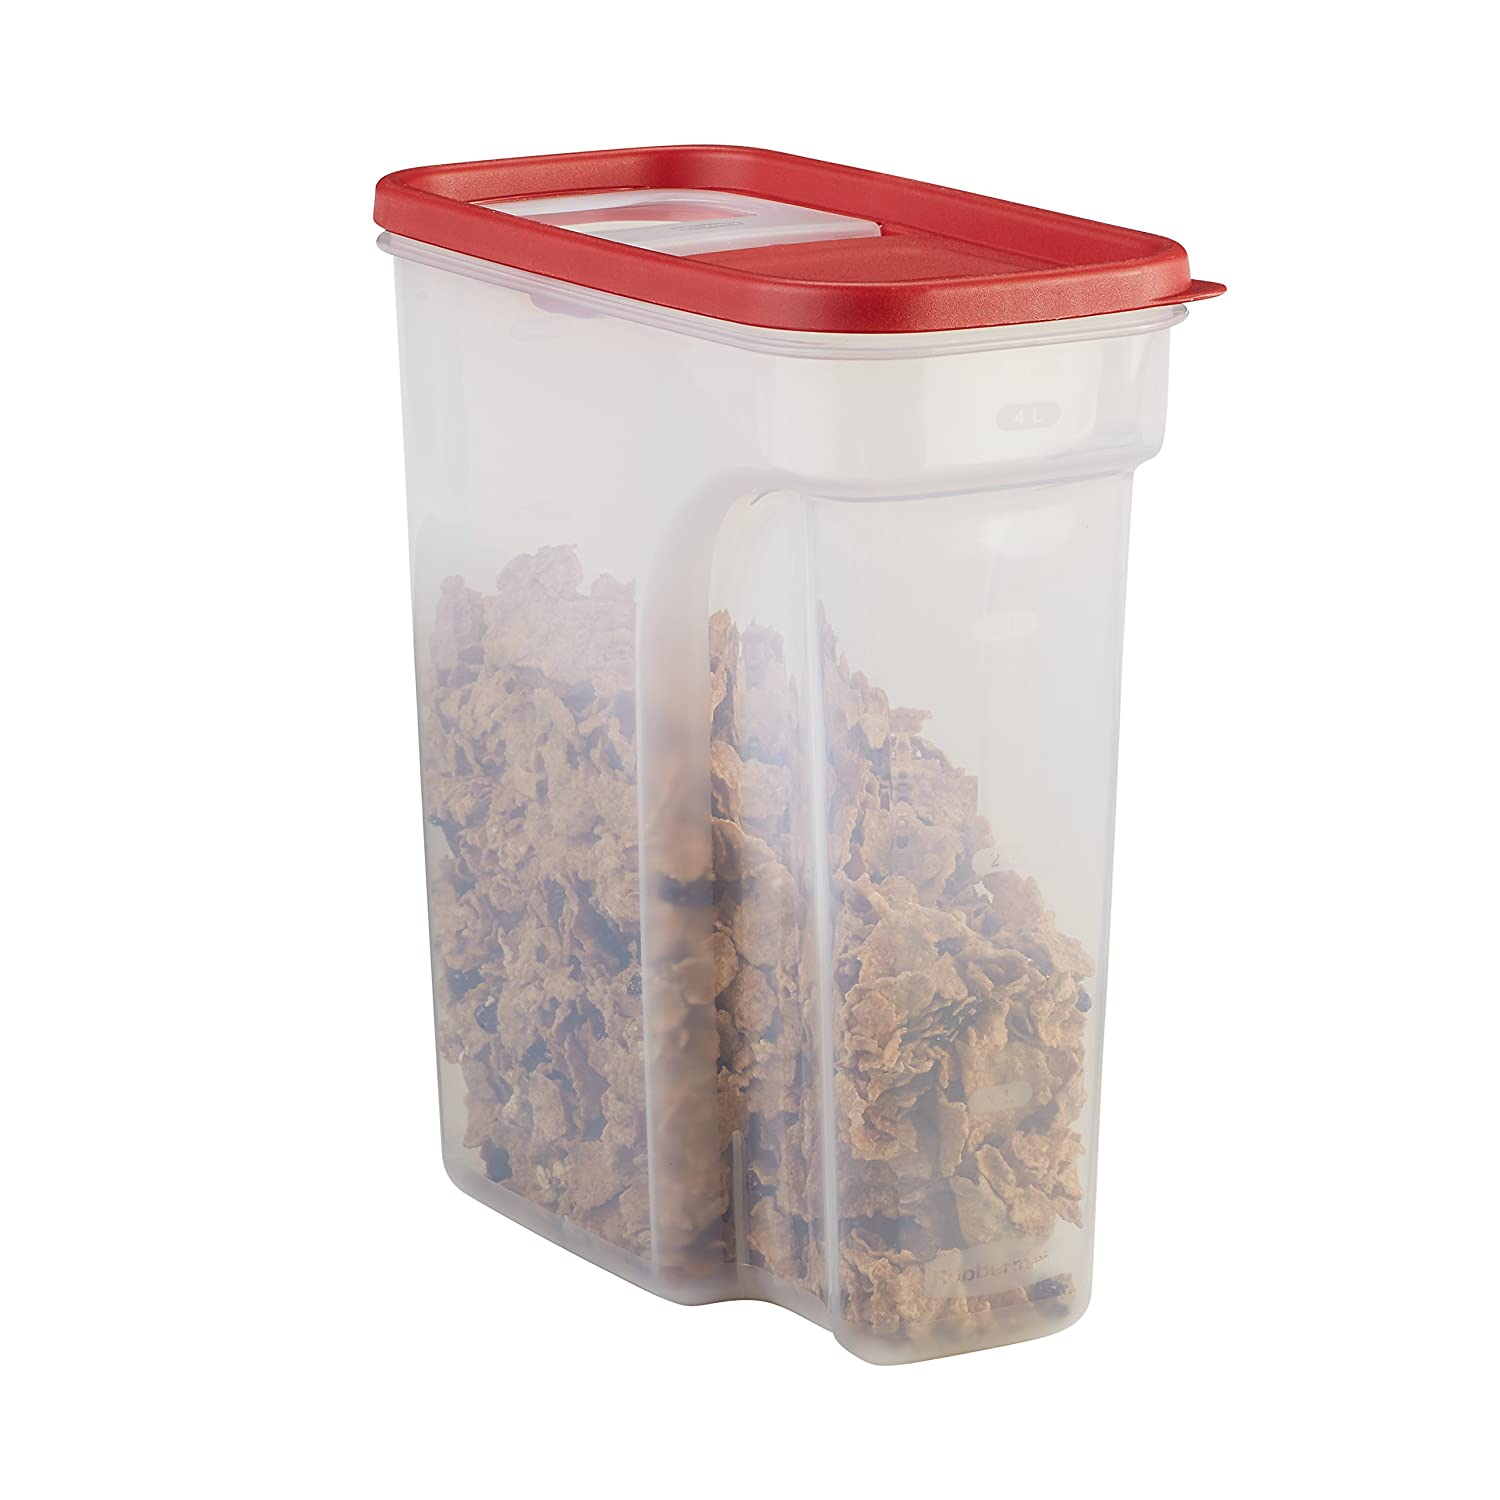 Rubbermaid 1856059 Modular Cereal Keeper Rubbermaid Consumer